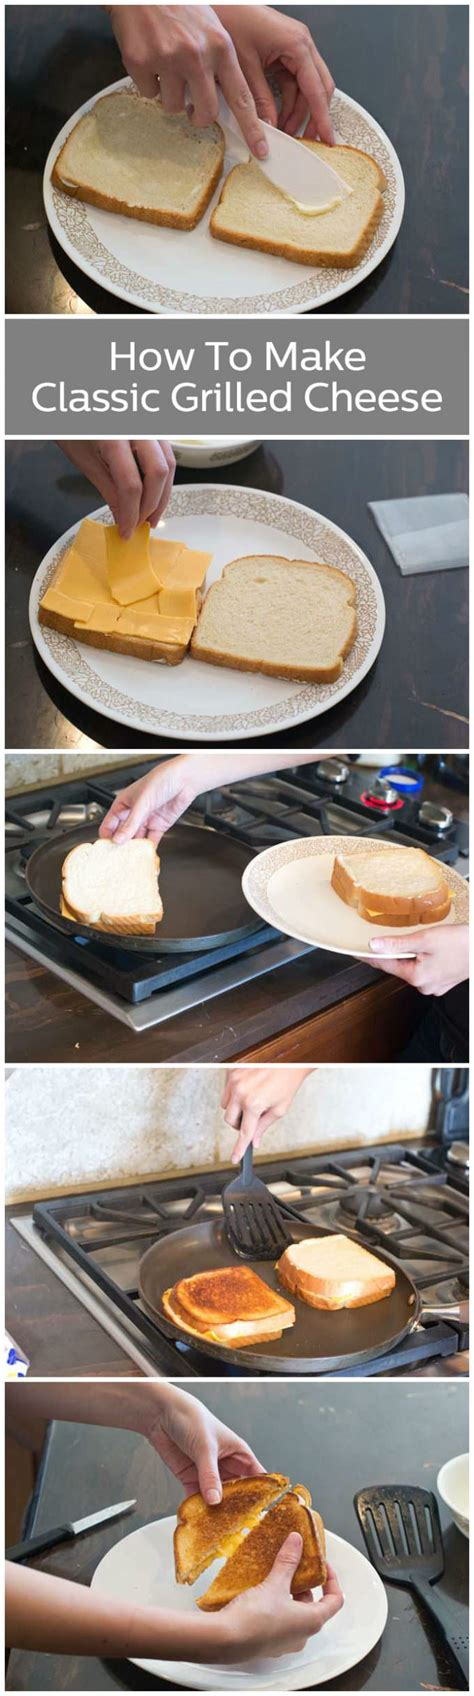 successful cheesemakingã step by step directions photos for nearly every type of cheese books how to make classic grilled cheese